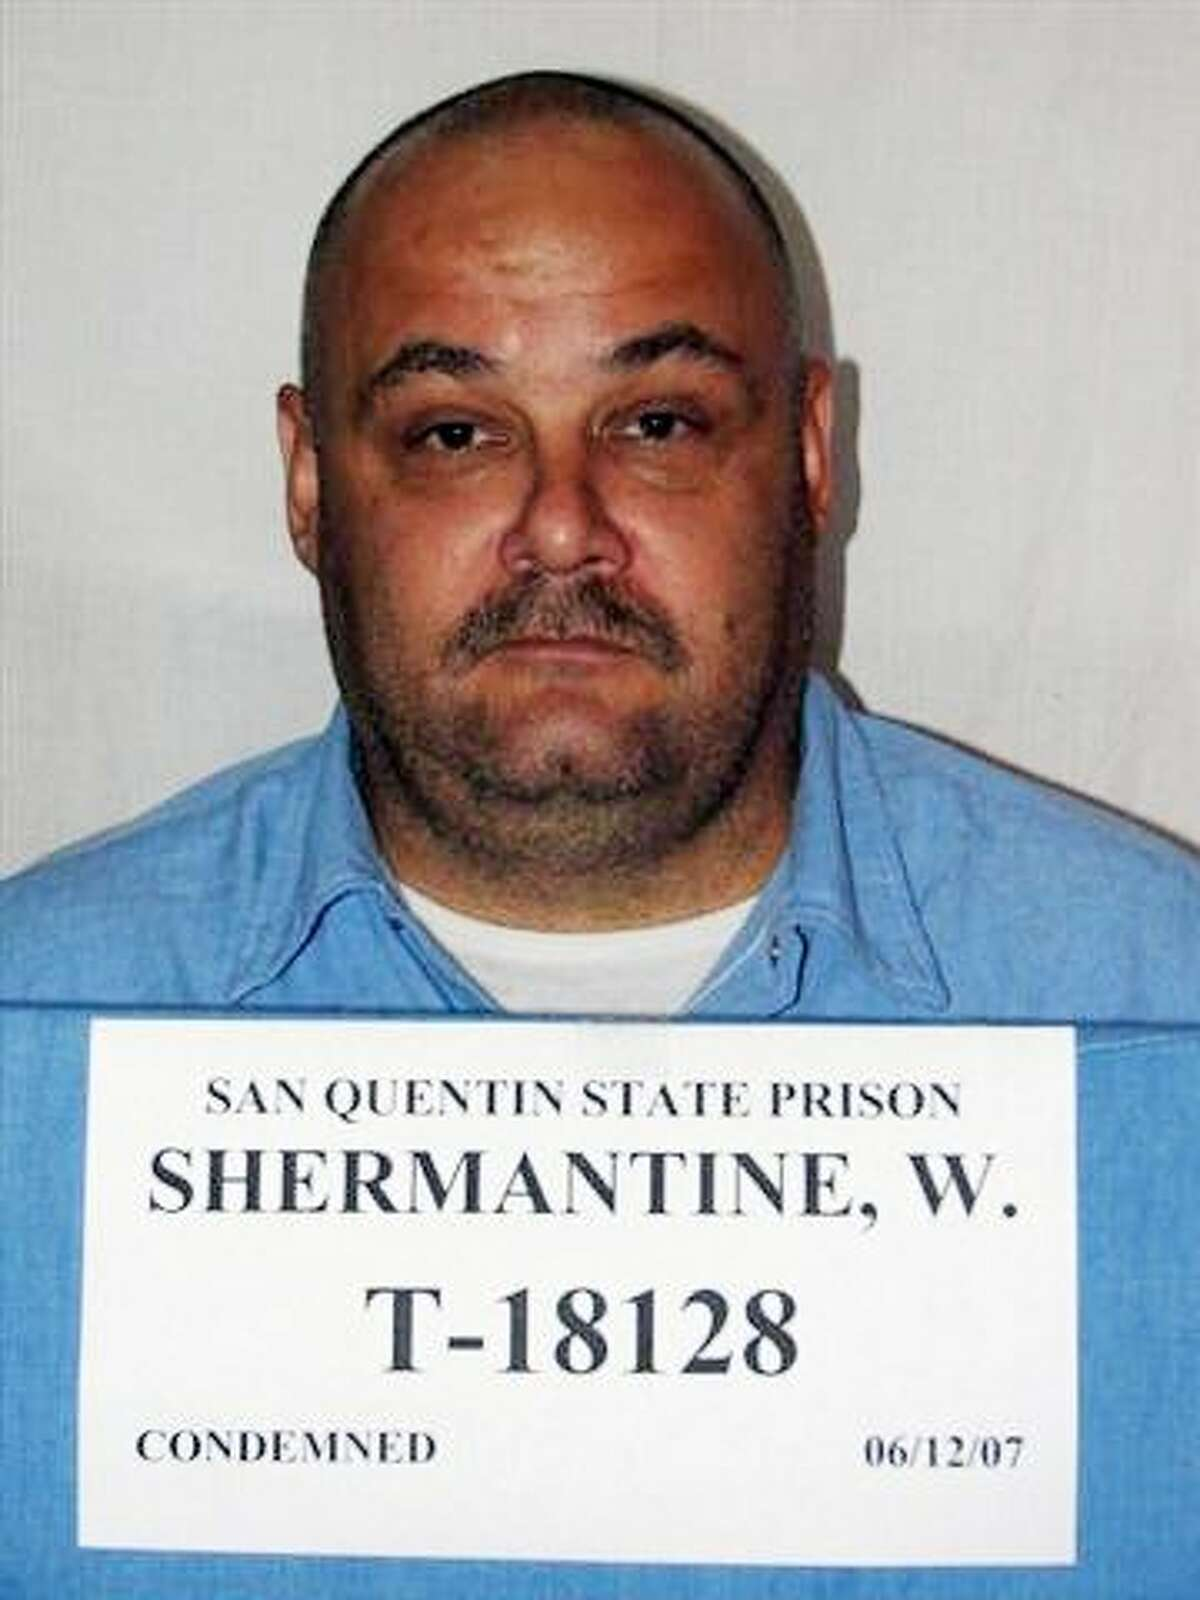 """In this undated file photo provided by the California Department of Corrections, Wesley Shermantine is shown. Authorities say Shermantine and Loren Herzog, dubbed the """"Speed Freak Killers,"""" wantonly murdered many throughout California's rural Central Valley before their arrest in 1999. Now, motivated by a bounty hunter's promise to pay, one of those convicted killer's is breaking his long-held secret and leading investigators to burial sites that have yielded hundreds of human bones"""